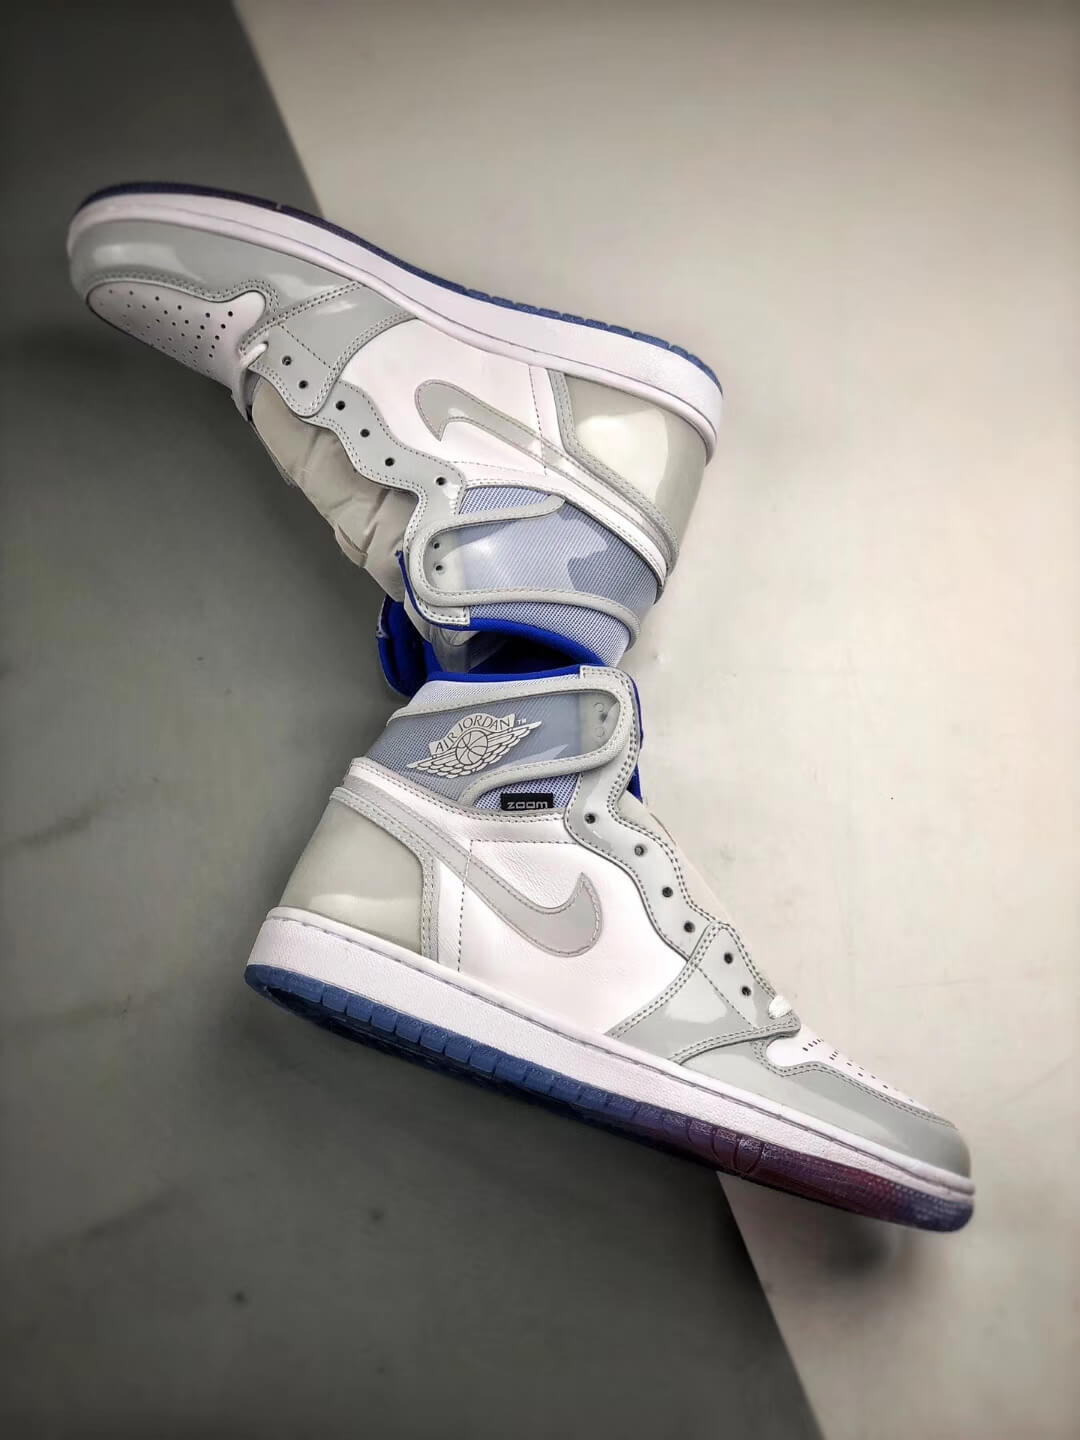 The Air Jordan 1 Retro High Zoom Racer Blue RepShoes 08